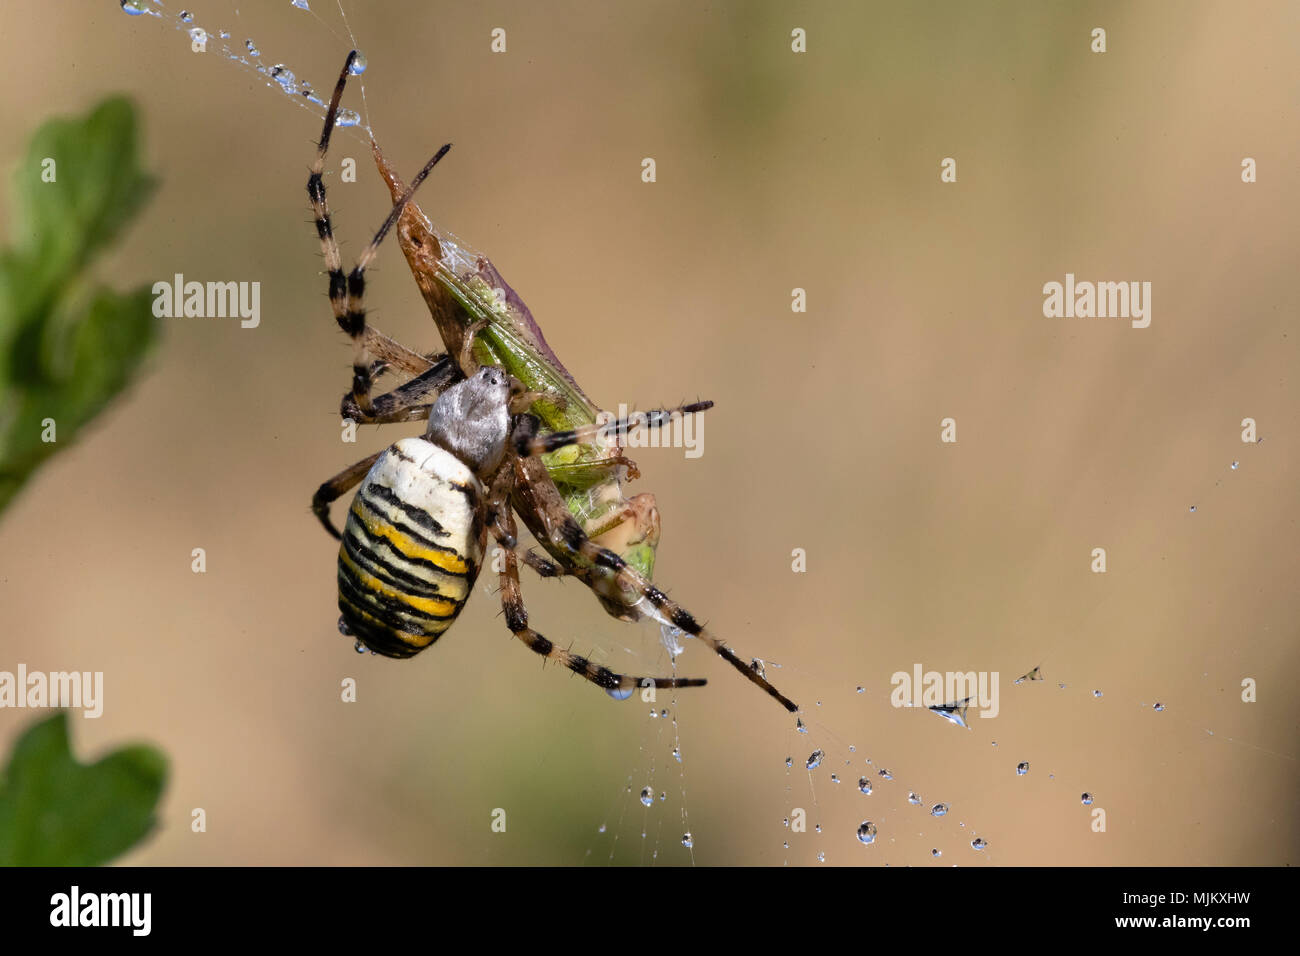 Marbled Orb Weaver Spider Uk Marbled Orb Weaver Spider